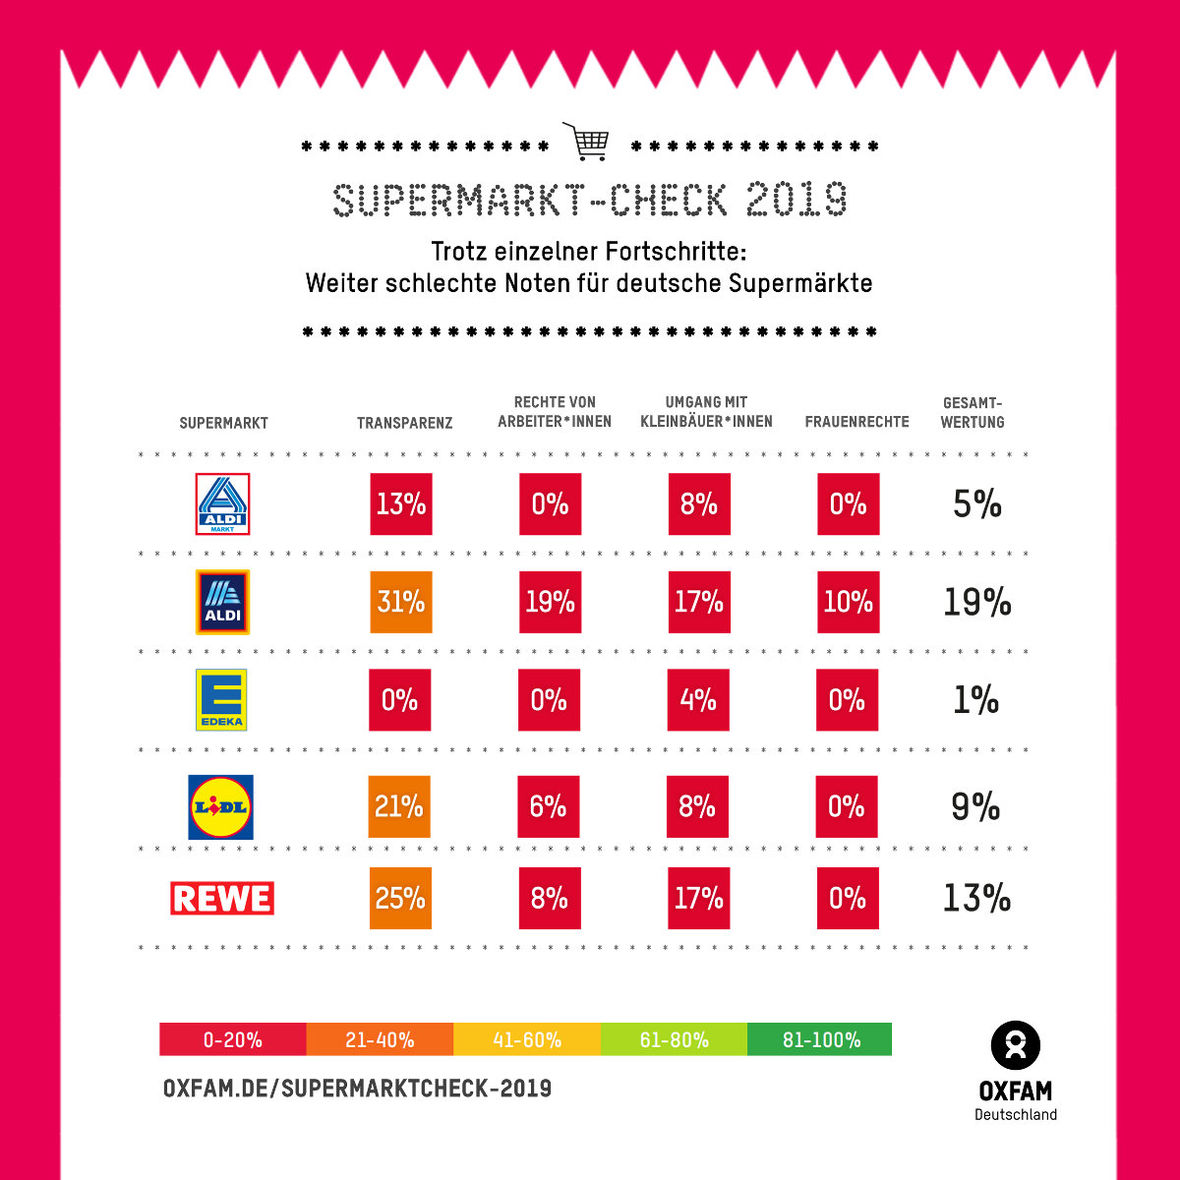 Oxfam Supermarkt-Check 2019